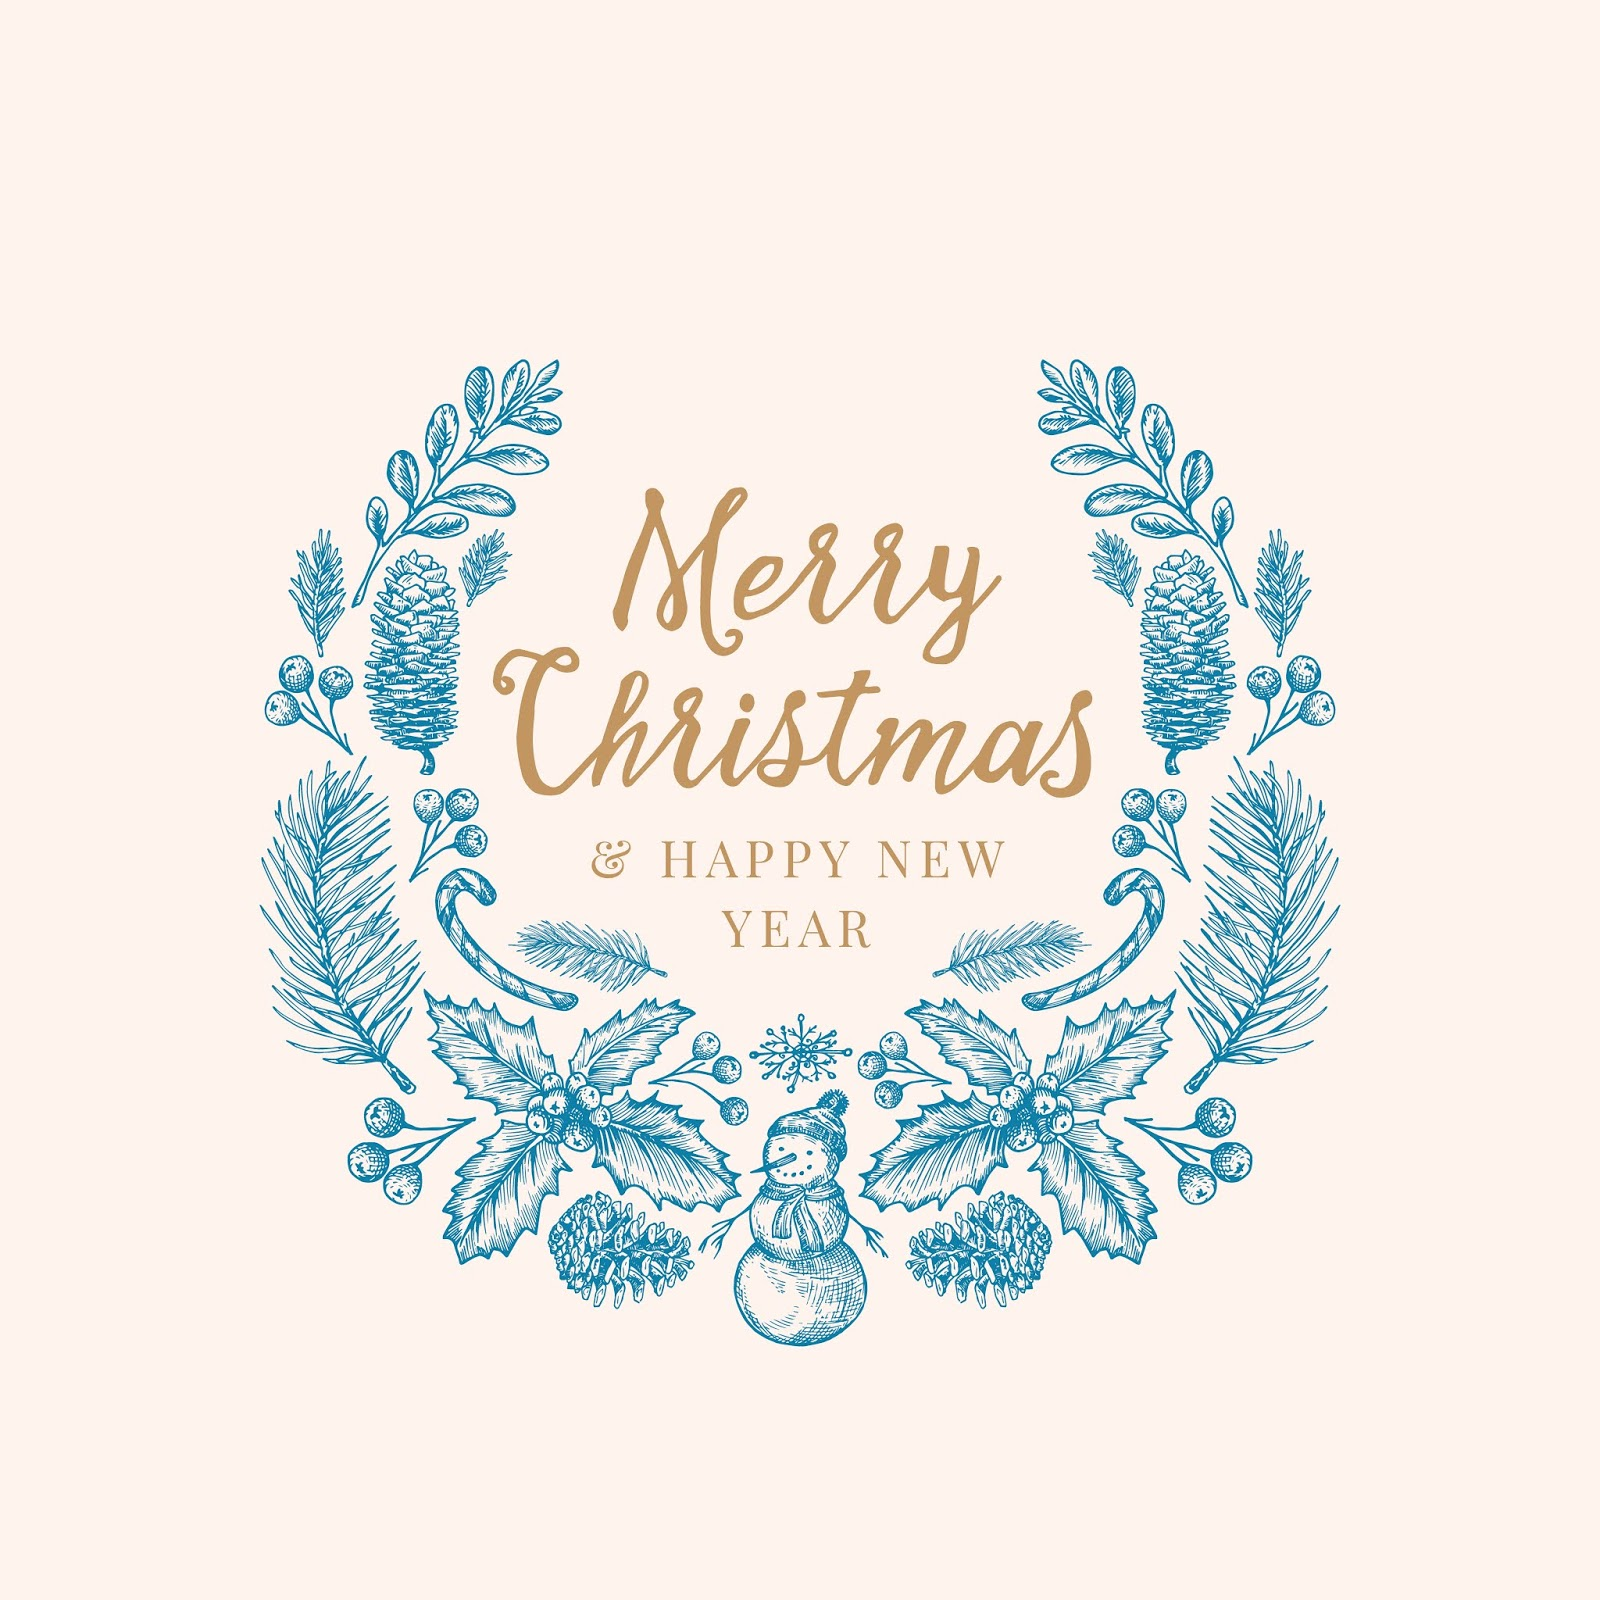 Hand Drawn Christmas Greetings Sketch Wreath Banner Card Template Free Download Vector CDR, AI, EPS and PNG Formats